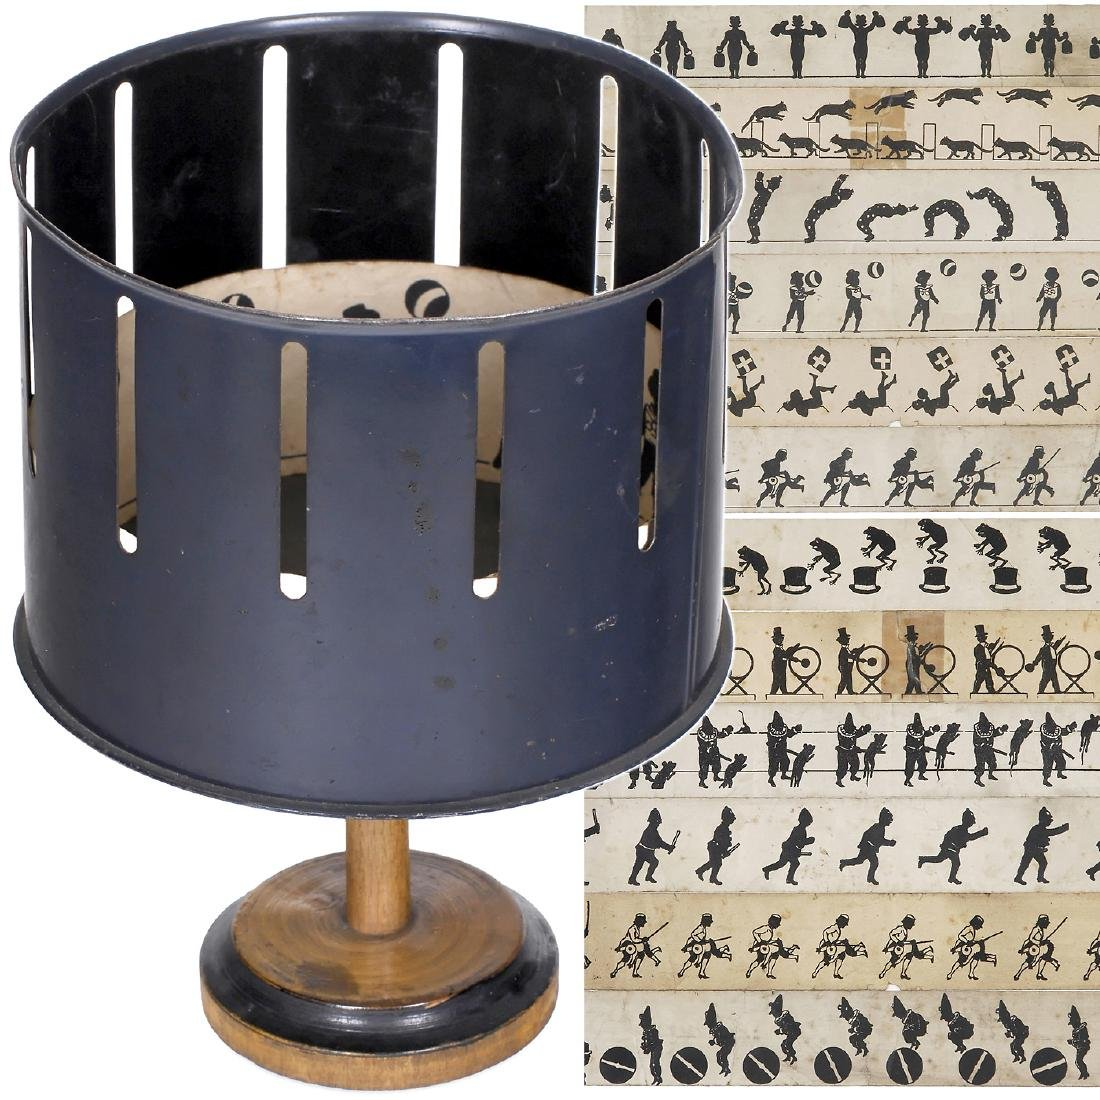 Miniature Zoetrope by Bing, c. 1900